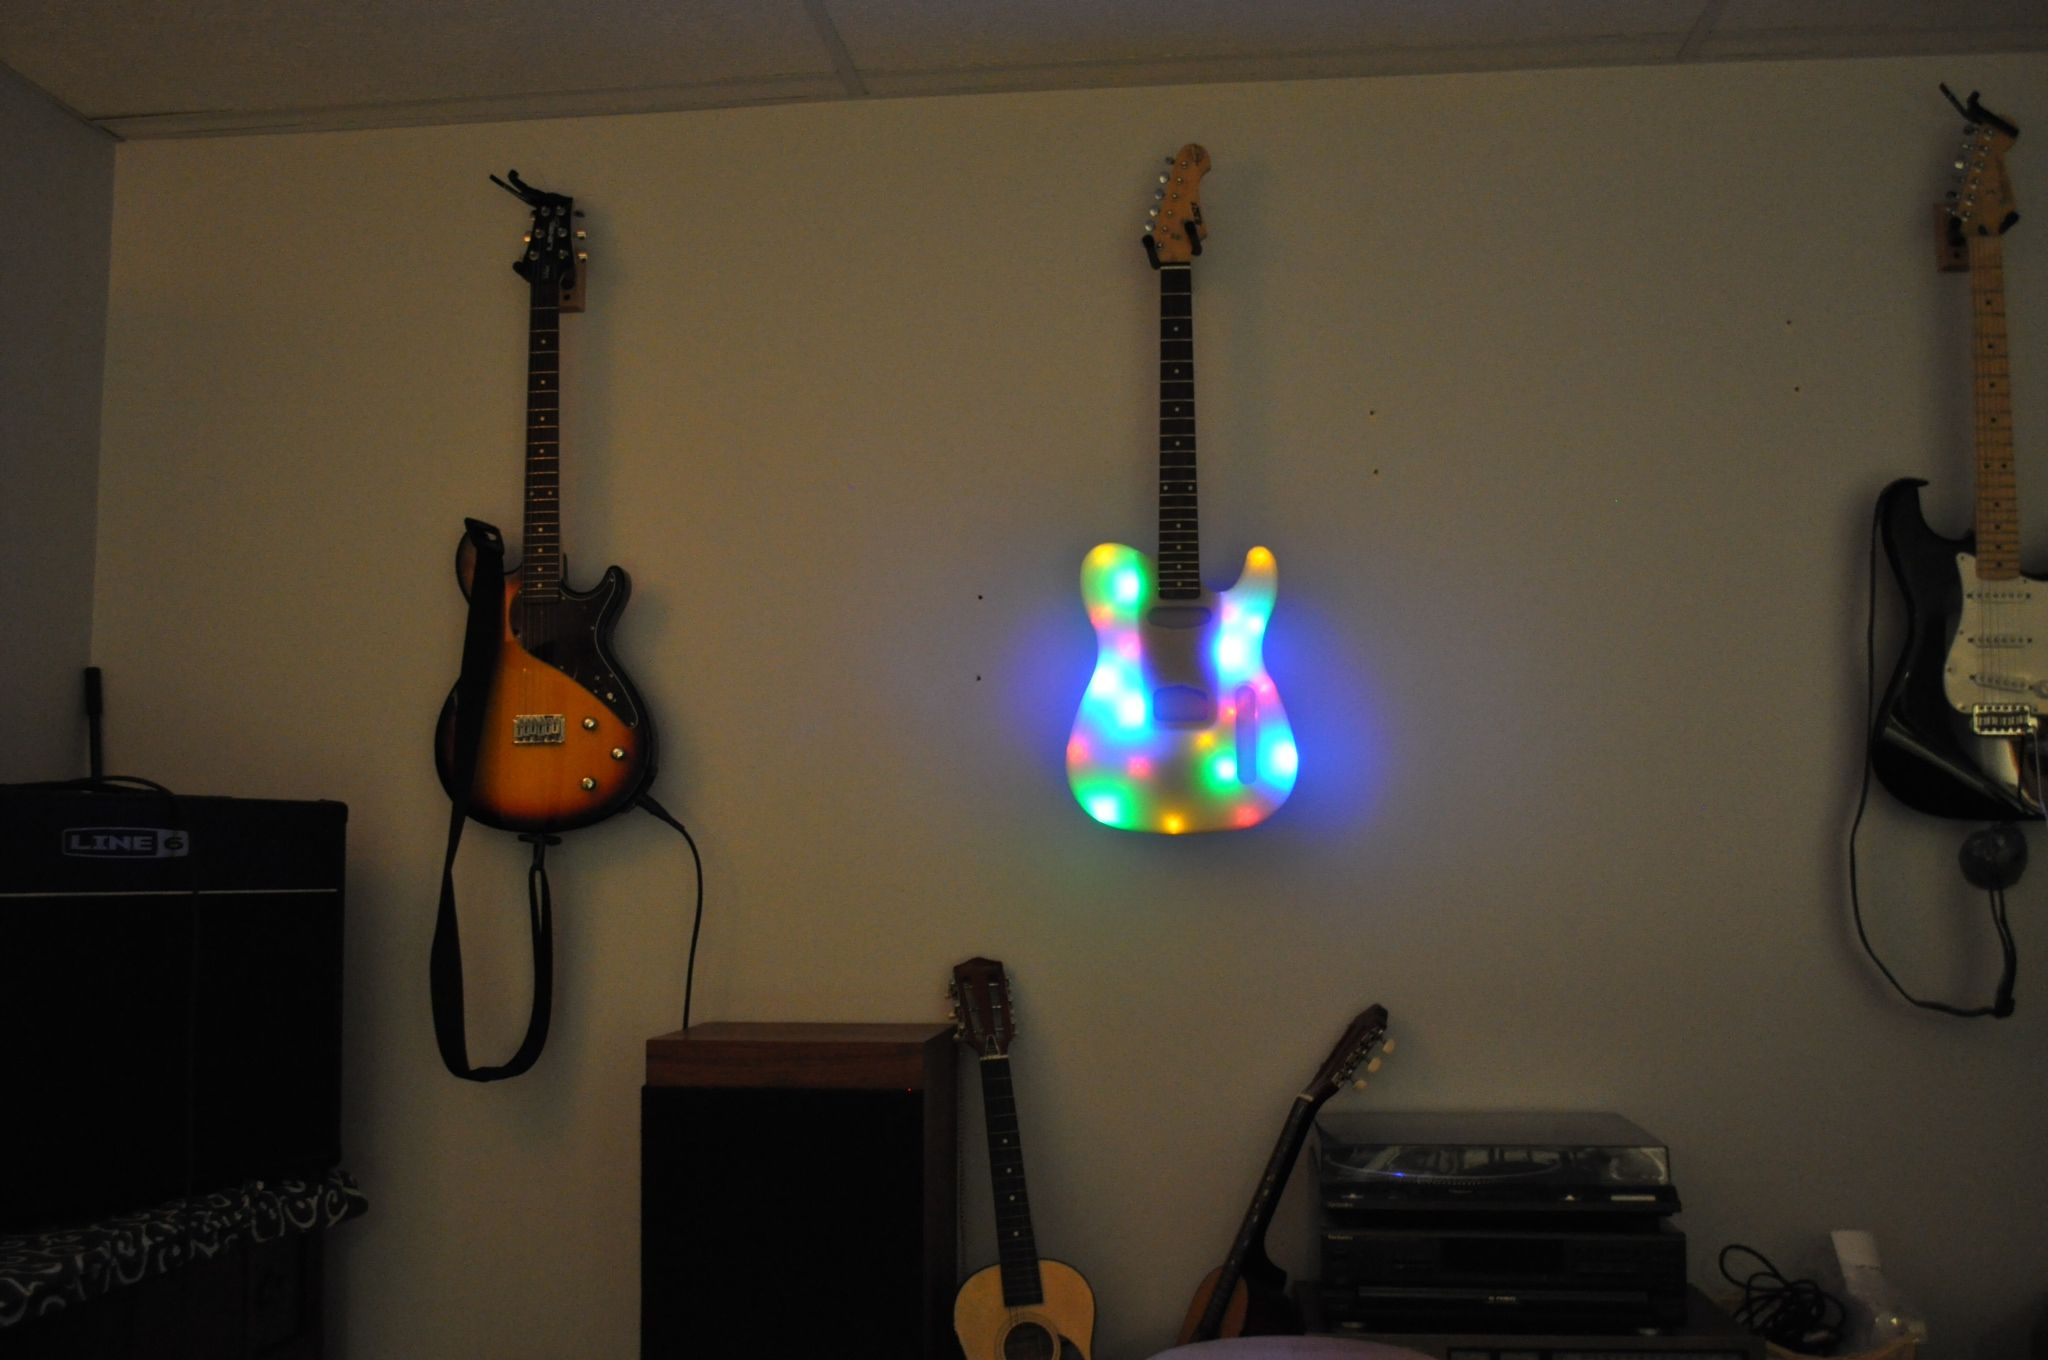 3d Printed Guitar With Lights Novelty Lamp Prints Lights